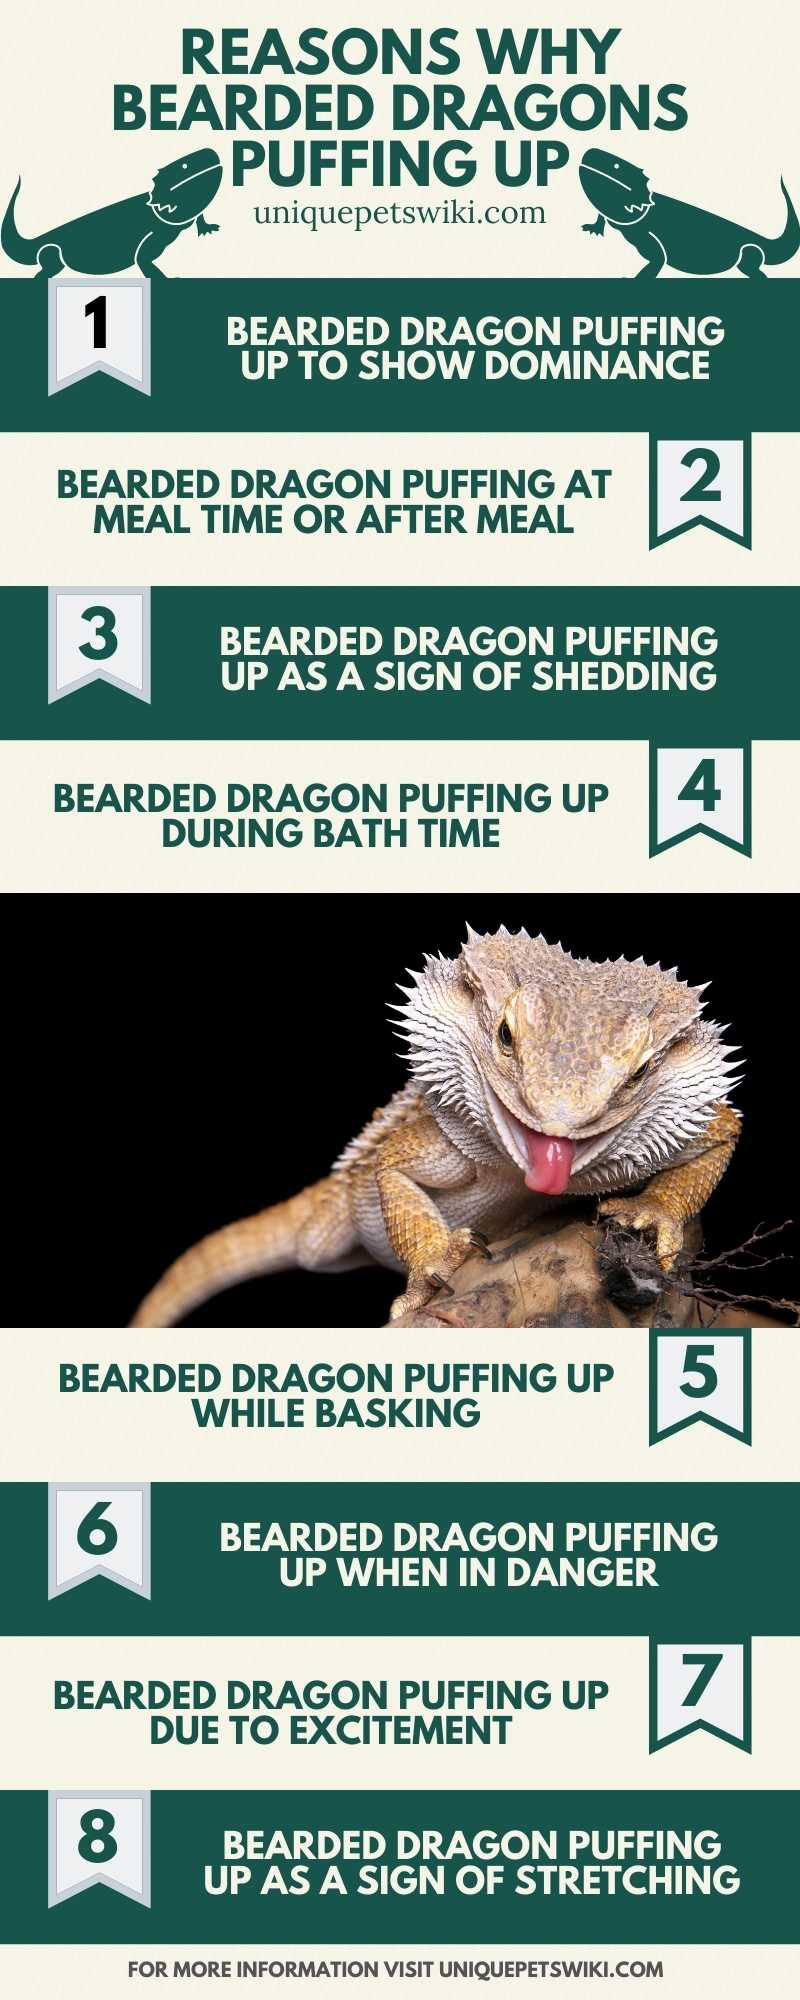 Bearded Dragons Puffing Up Reasons Infographics